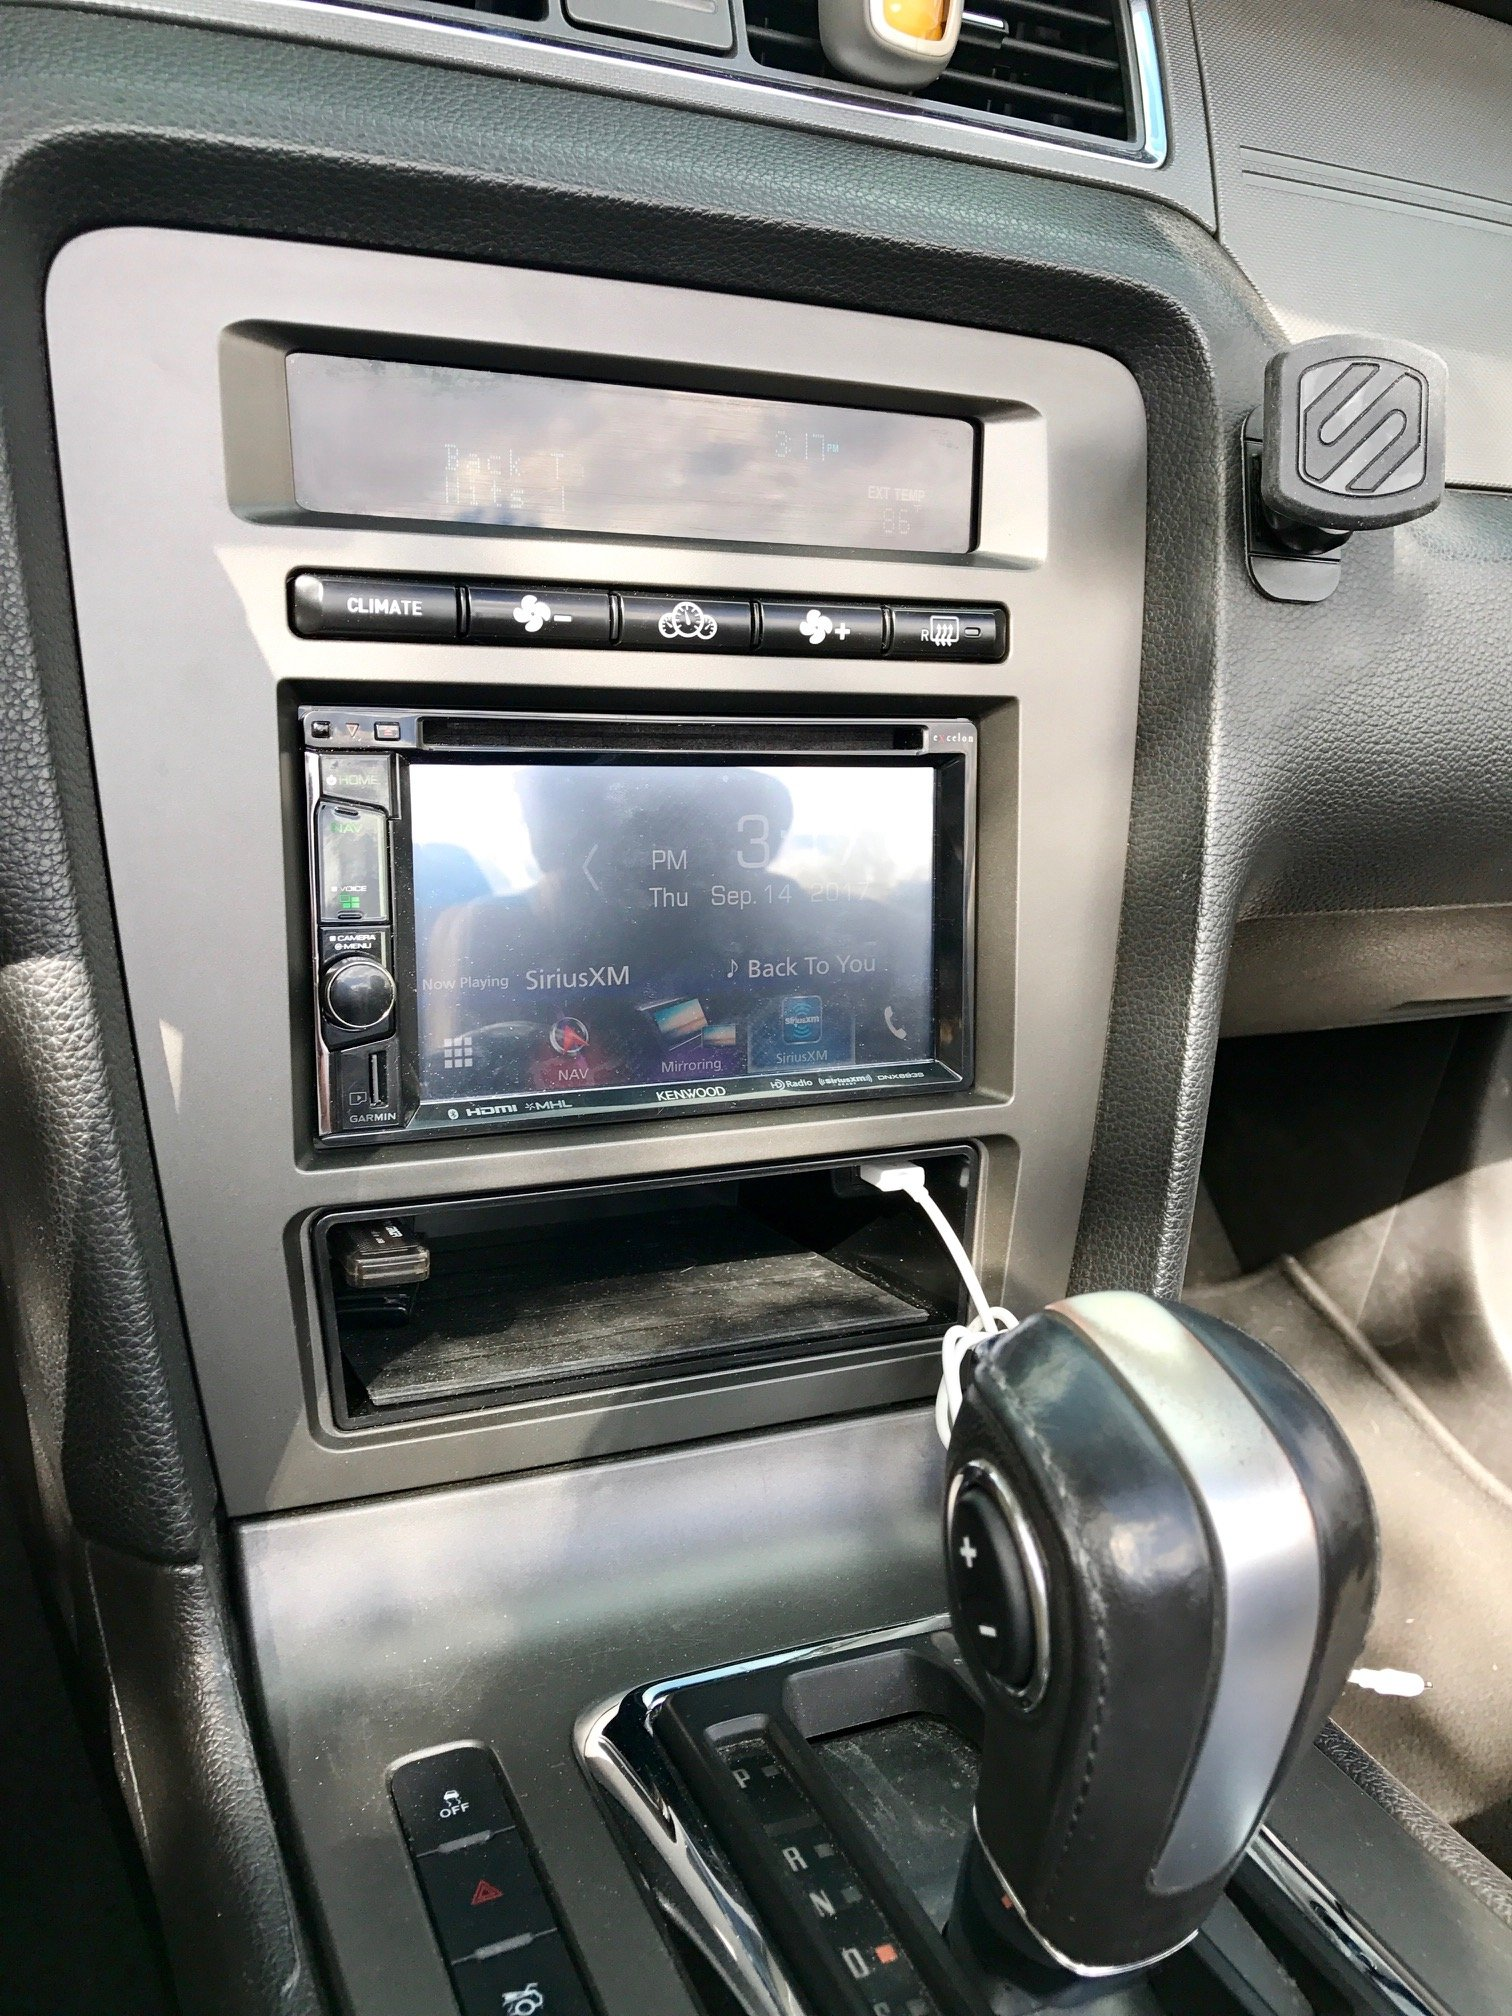 sync lockpick pro or idatalink maestro rr for head unit replacement